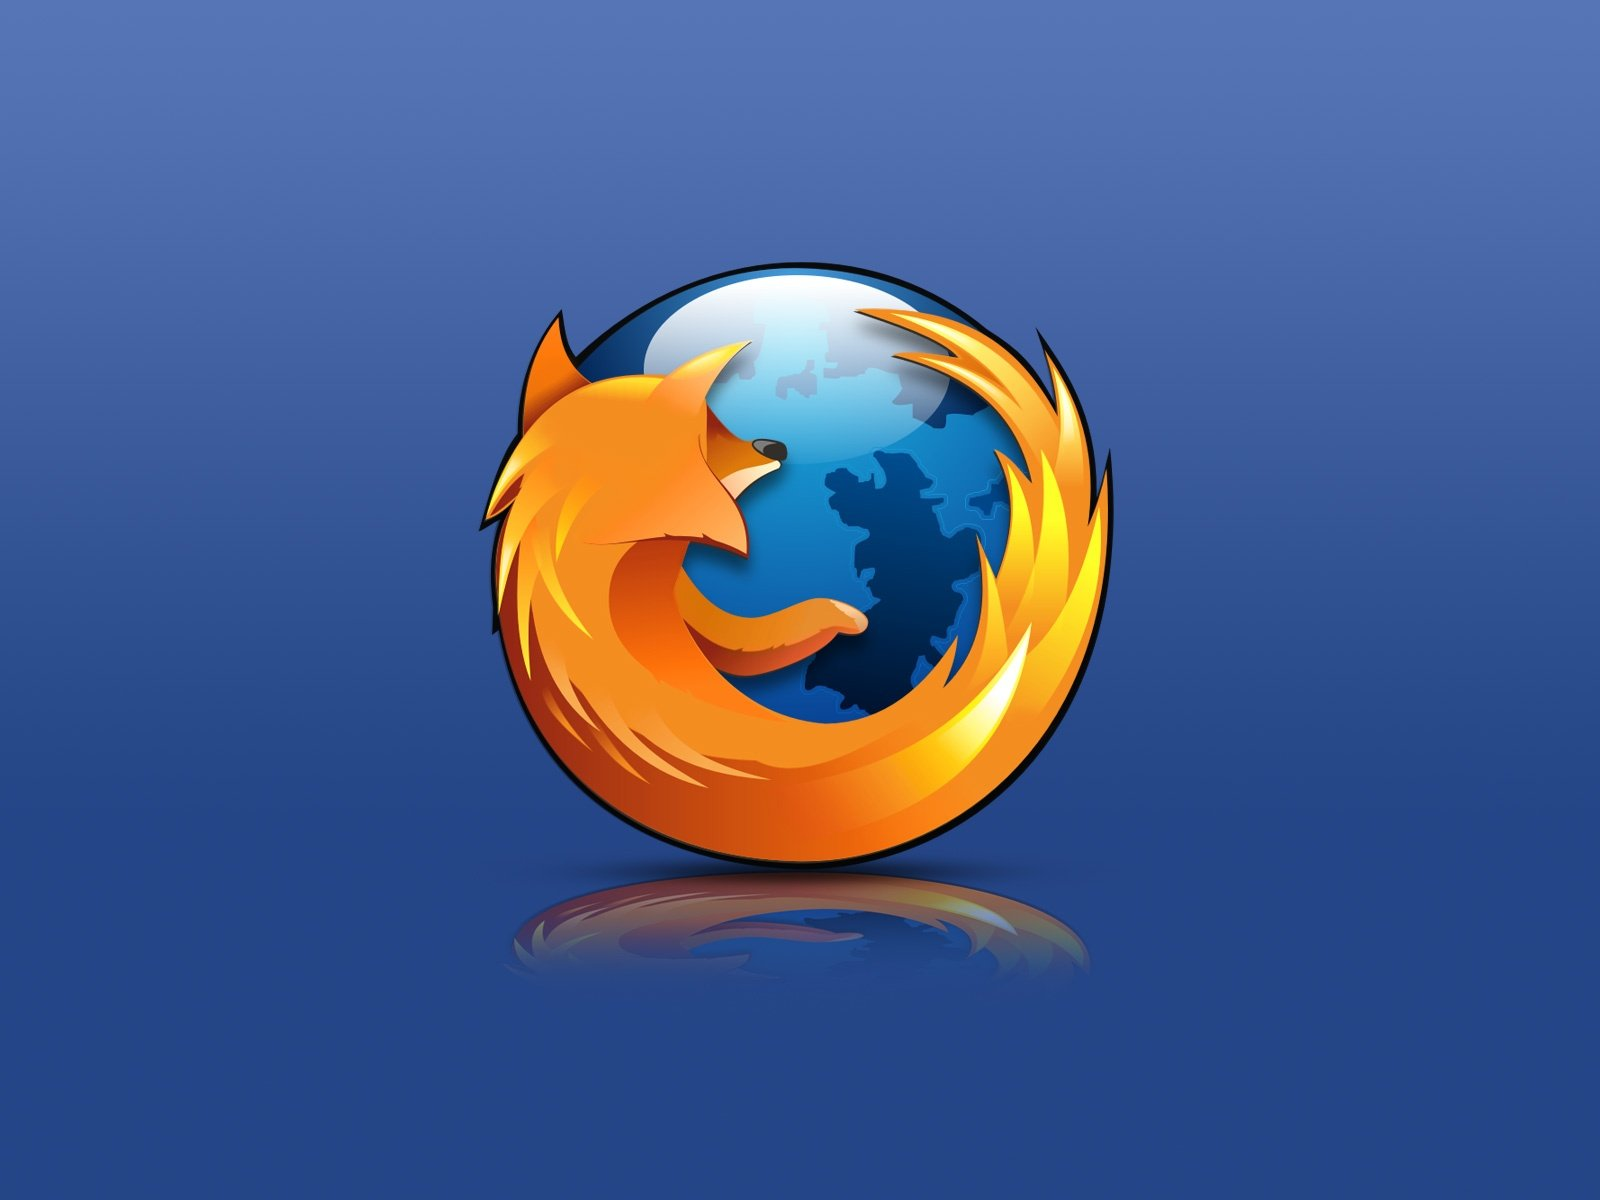 mozilla-firefox-wallpapers_551_1600x1200